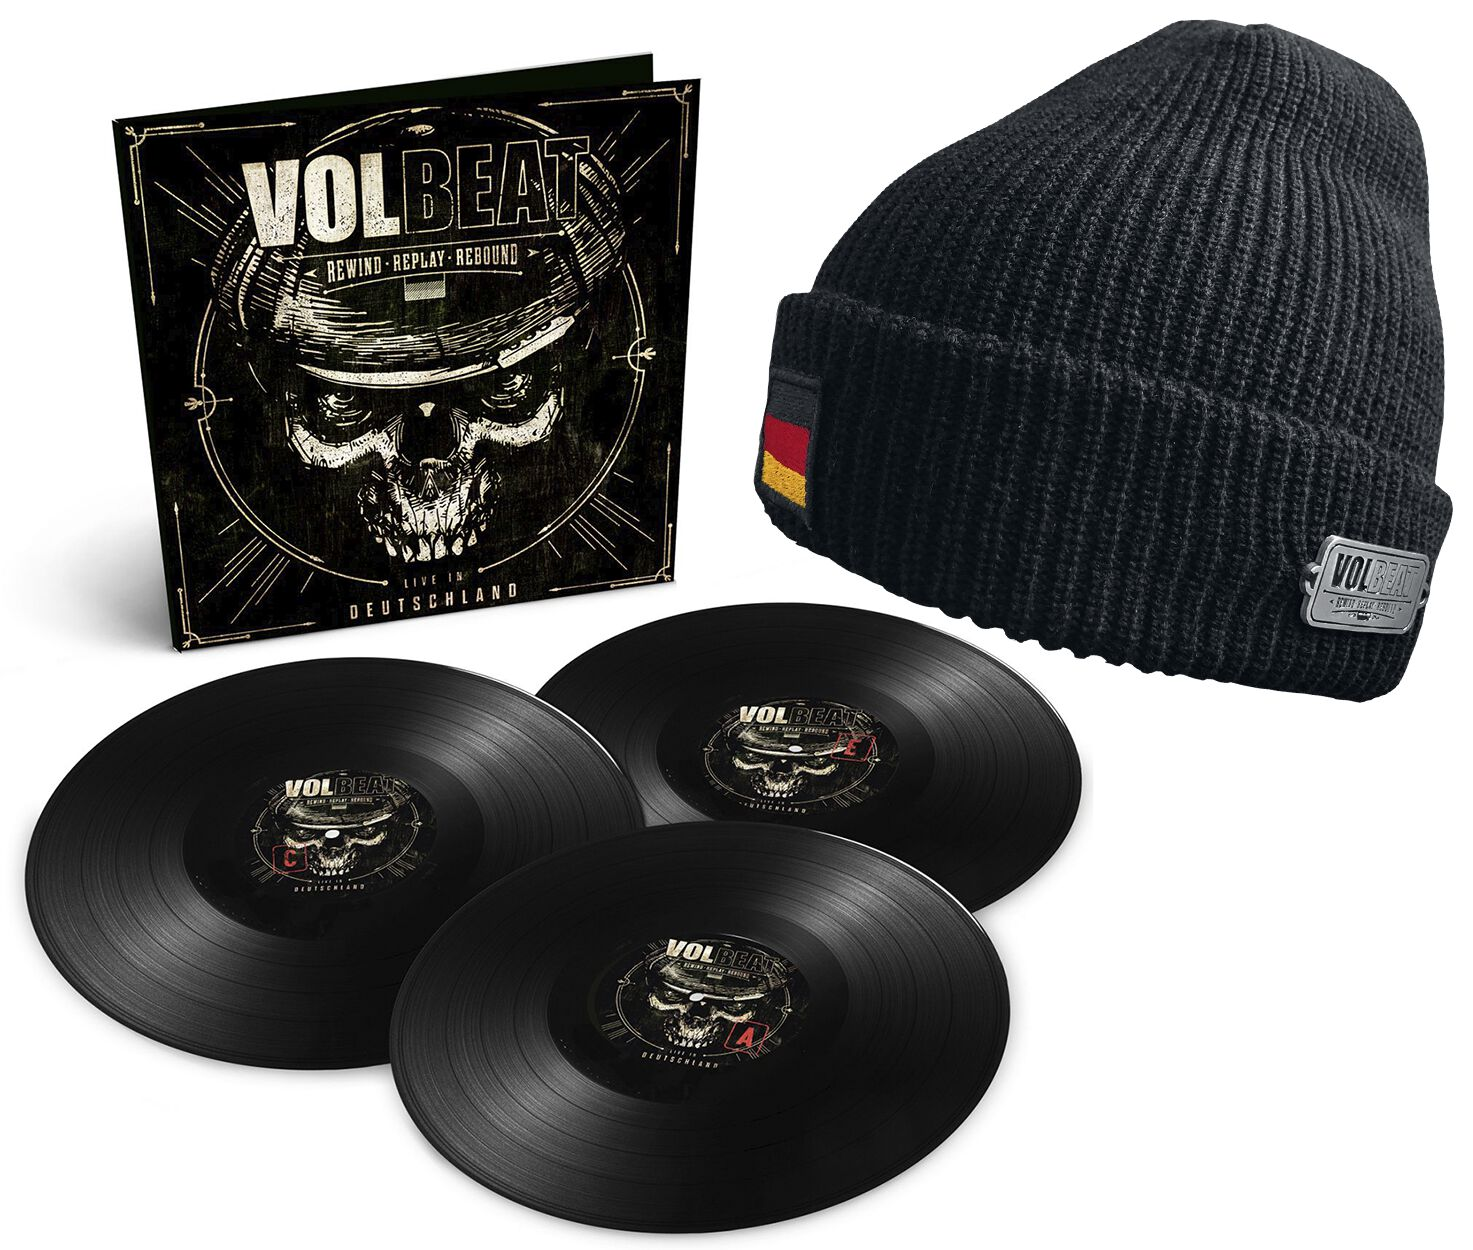 Image of Volbeat Rewind, replay, rebound: Live in Deutschland 3-LP & Beanie Standard